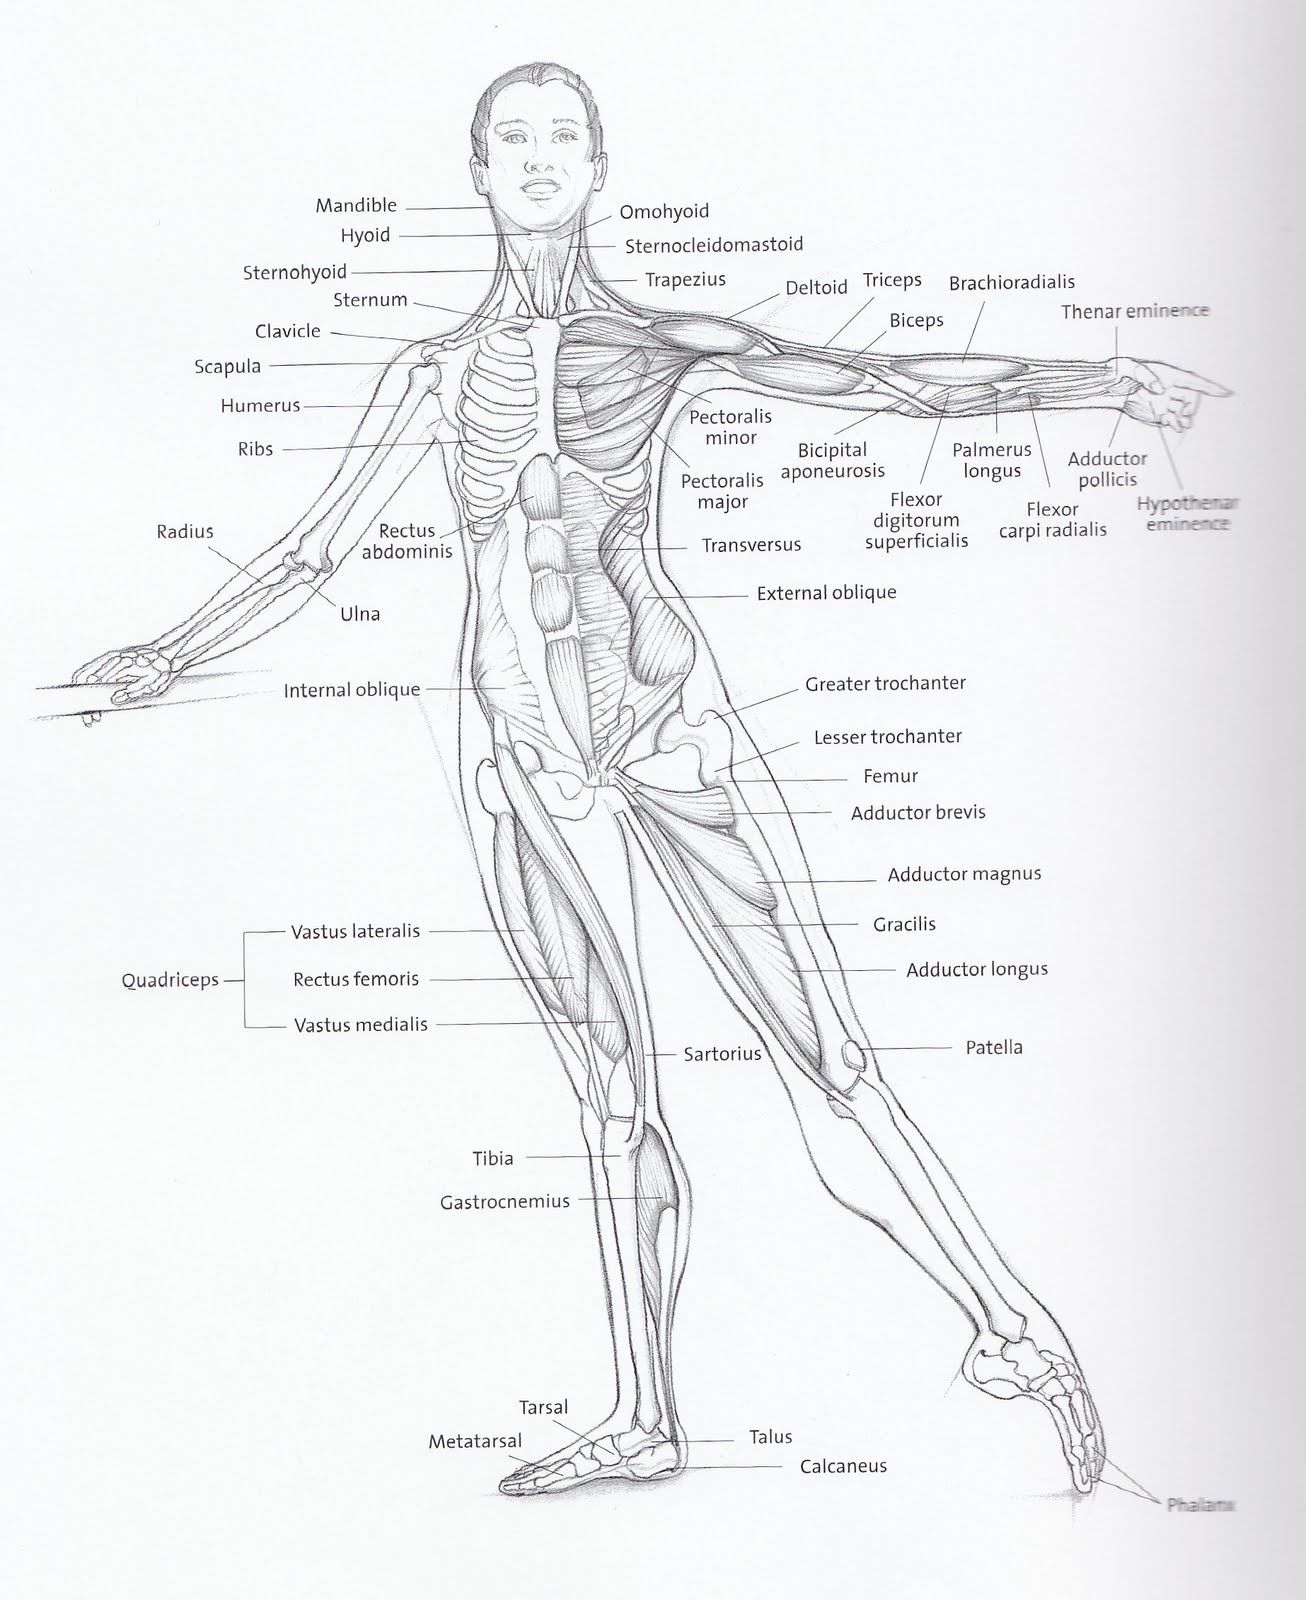 Basic anatomical diagram including bones and major muscle groups for ...